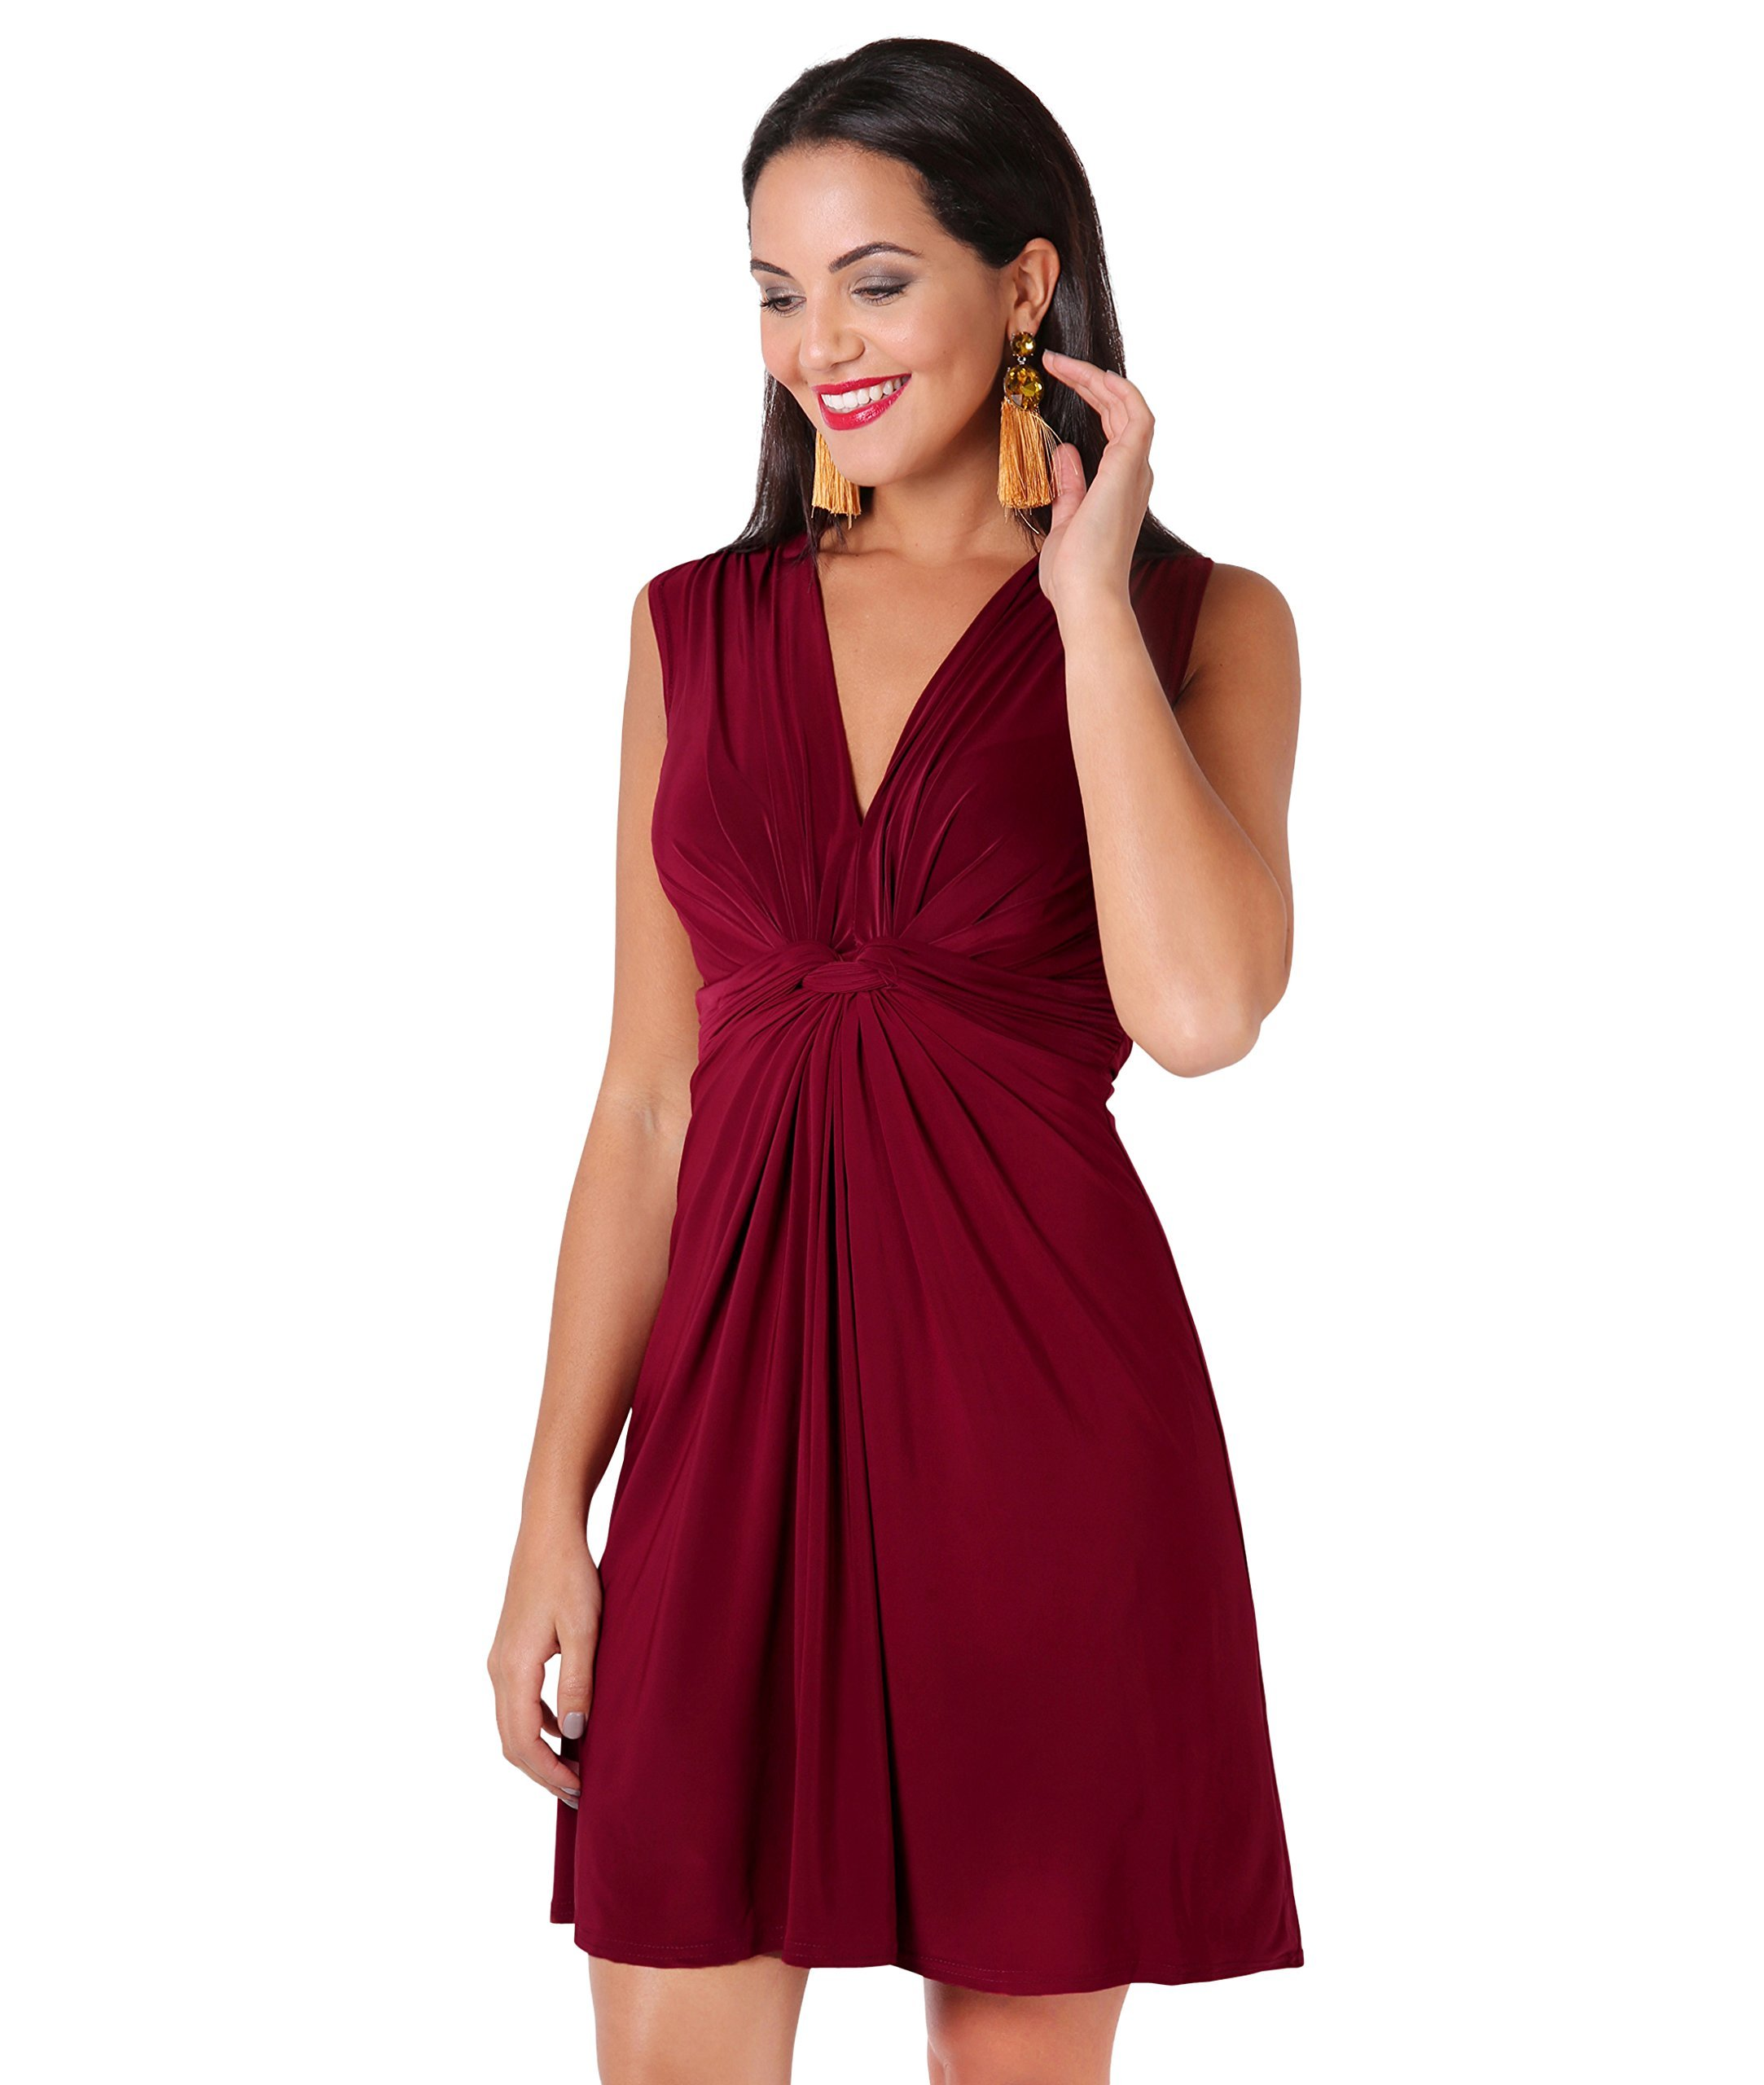 Women Summer Dresses Wrap Mini Knot Front Gathered Drape Party Casual Cocktail (Berry (9354), 18), 9354-BER-18